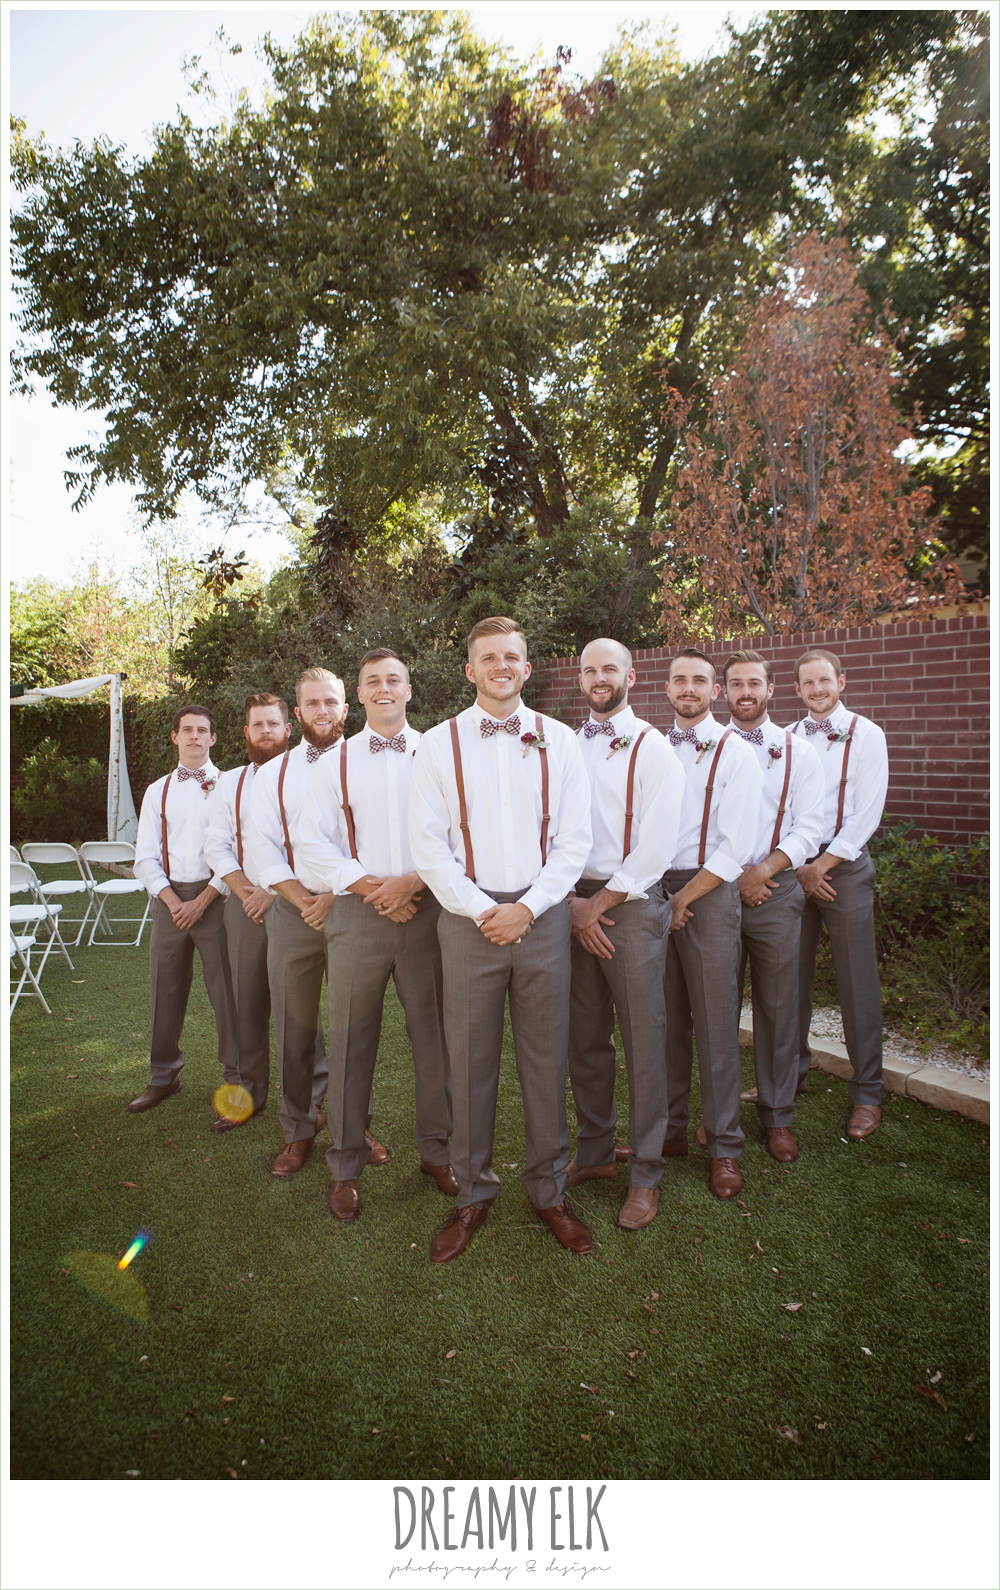 Groom And Groomsmen Wearing Suspenders Bow Ties And Gray Pants The Union On 8th Wedding Photo Wedding Groomsmen Wedding Groomsmen Attire Groomsmen Outfits